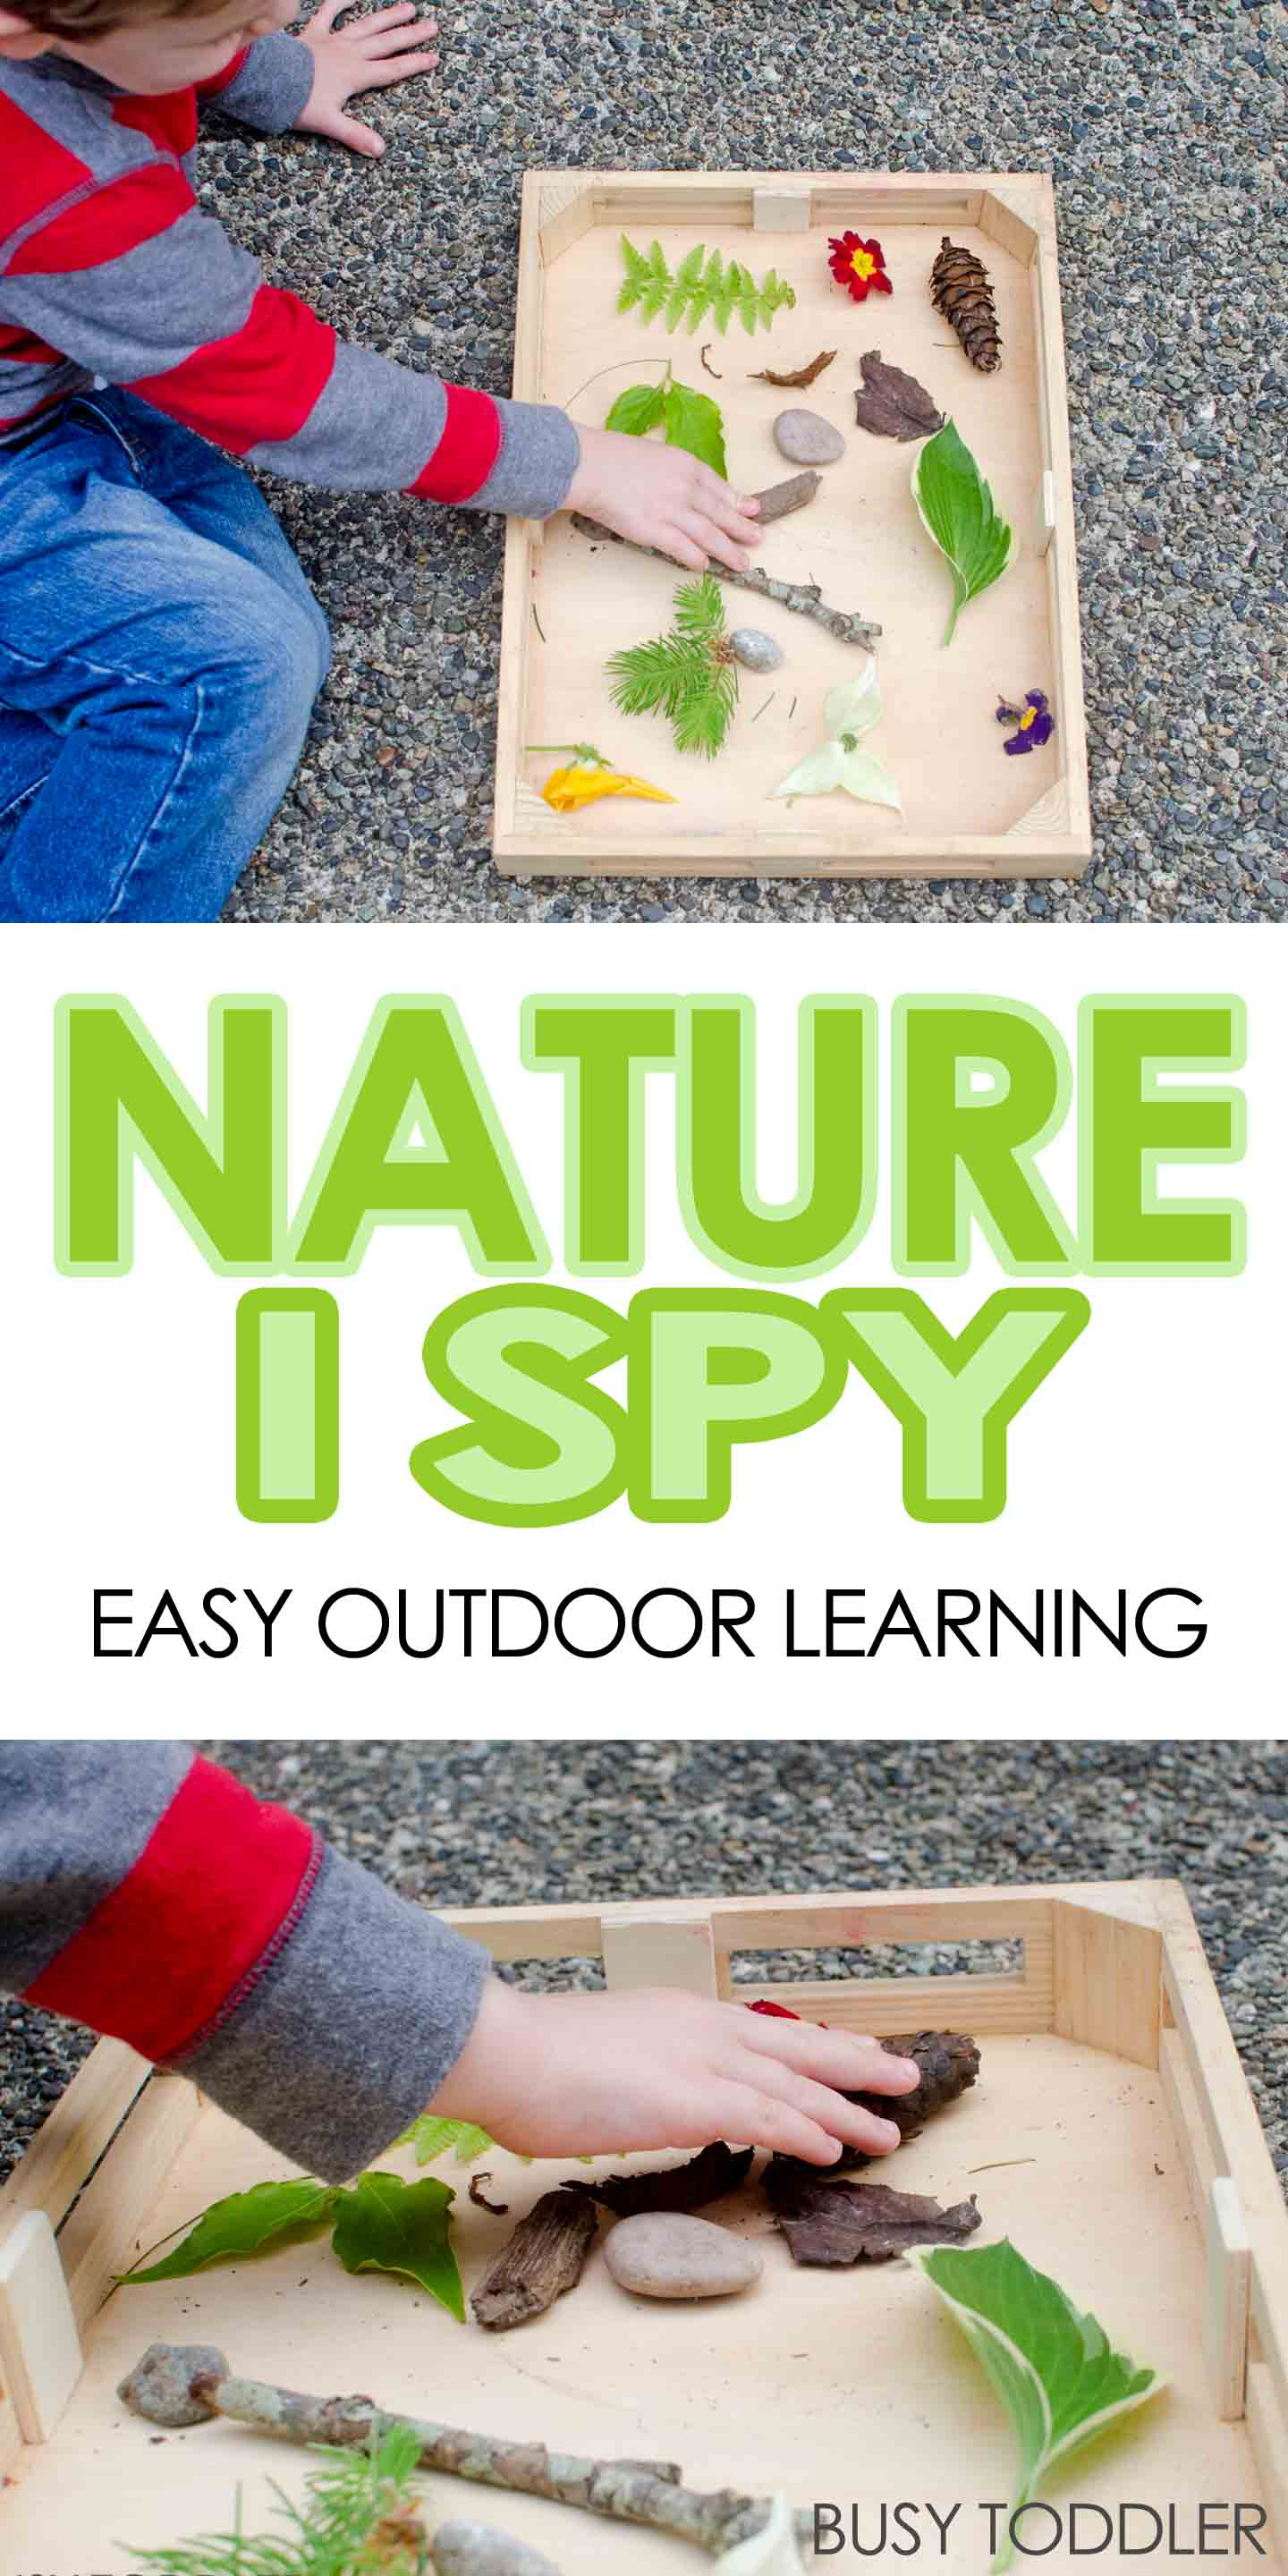 NATURE I-SPY: A fun outdoor learning activity for toddlers and preschoolers; an easy outdoor activity